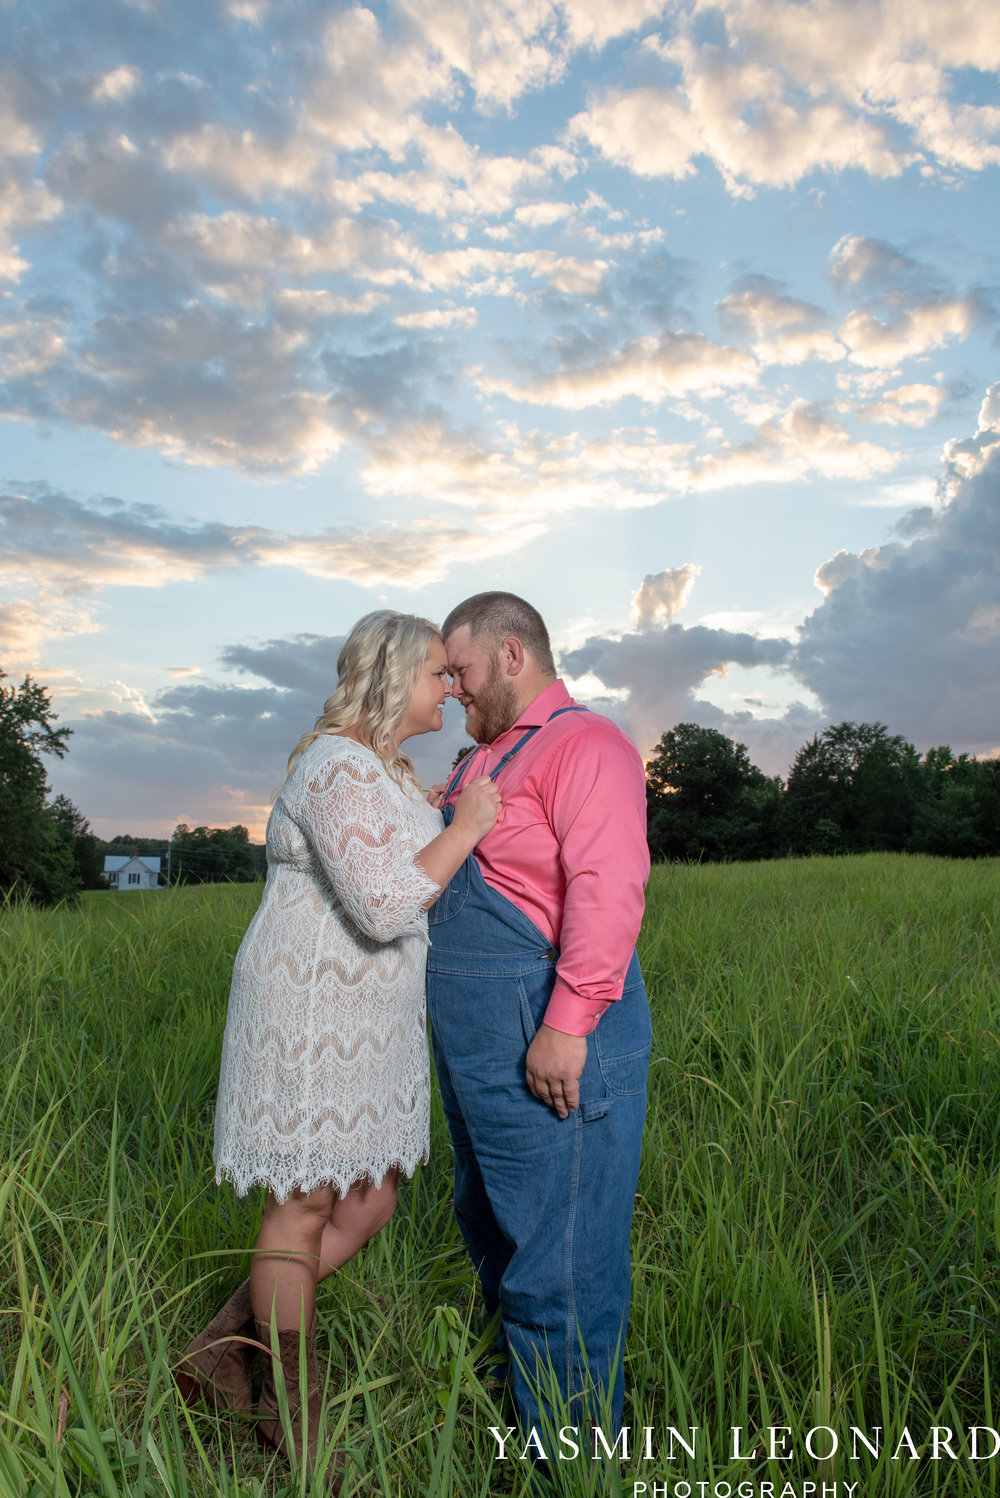 NC Engaged - Wallburg Engagement - Country Engagement Session - Barn Engagement Session - Outdoor Engagement Session - Farmer Engagement Session - Engagement Session with Overalls and Boots-16.jpg